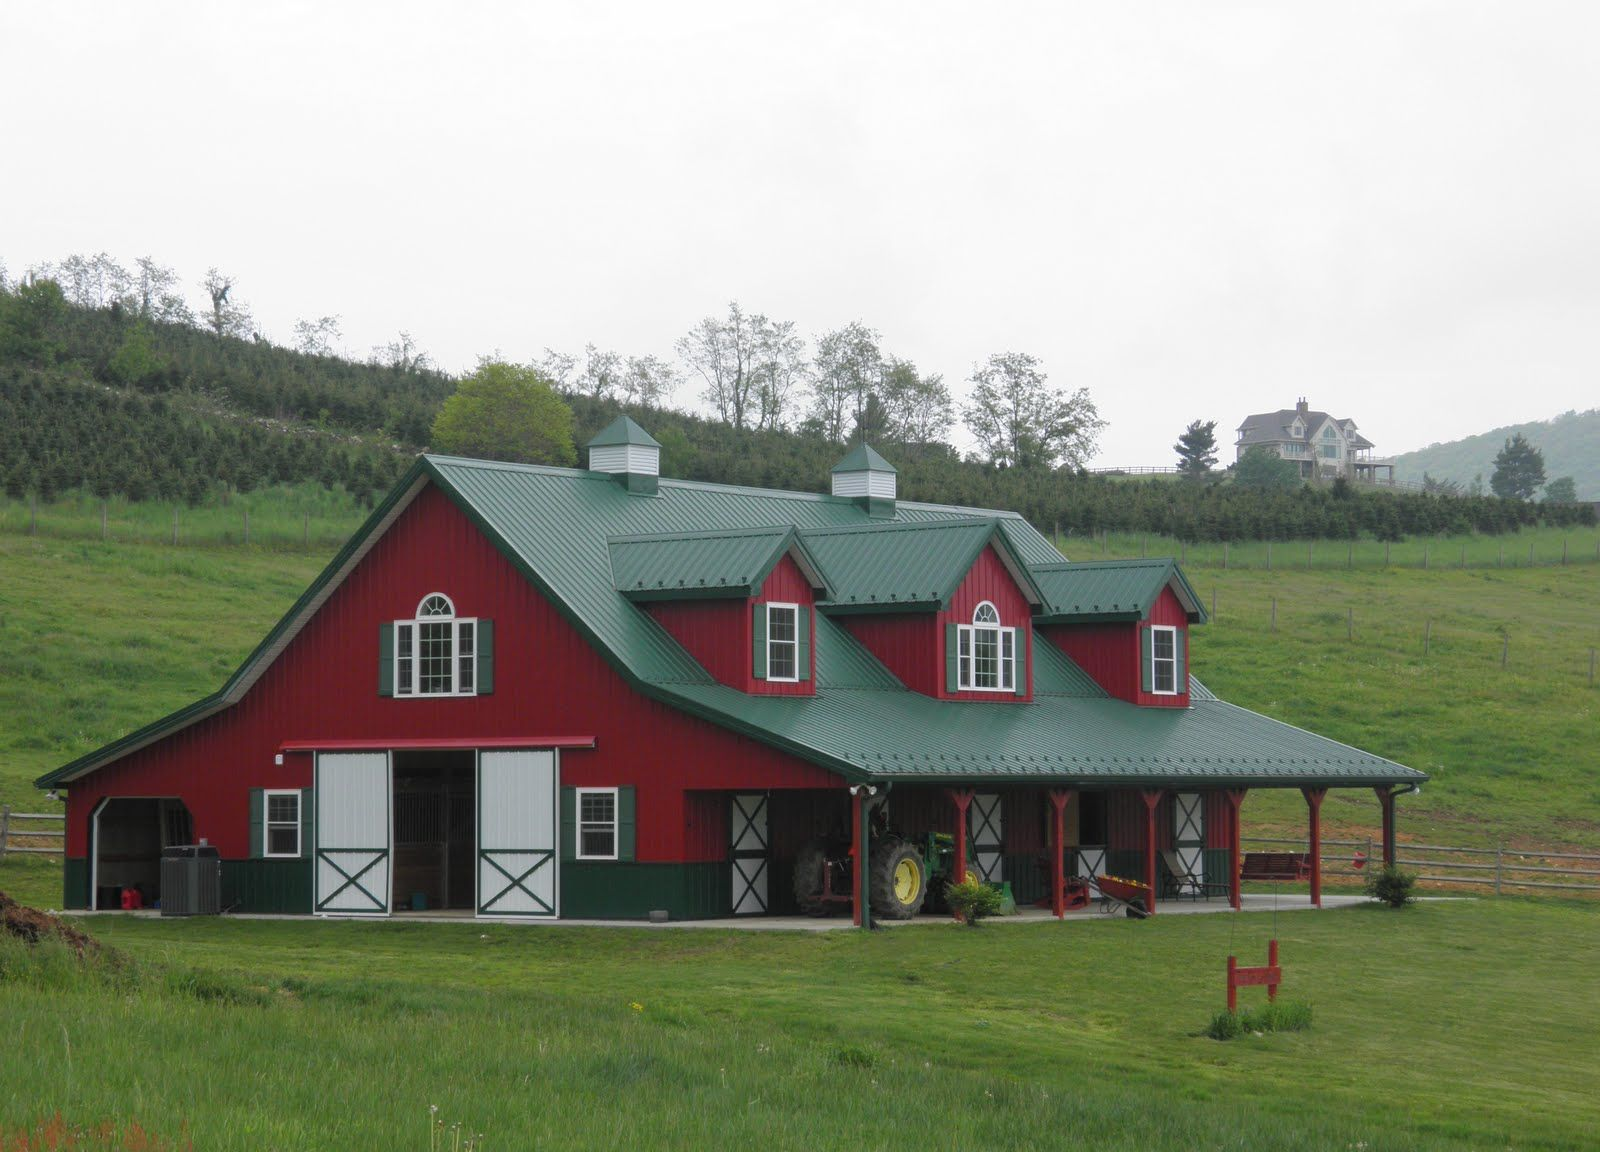 House that looks like red barn images at home in the for Barn house layouts